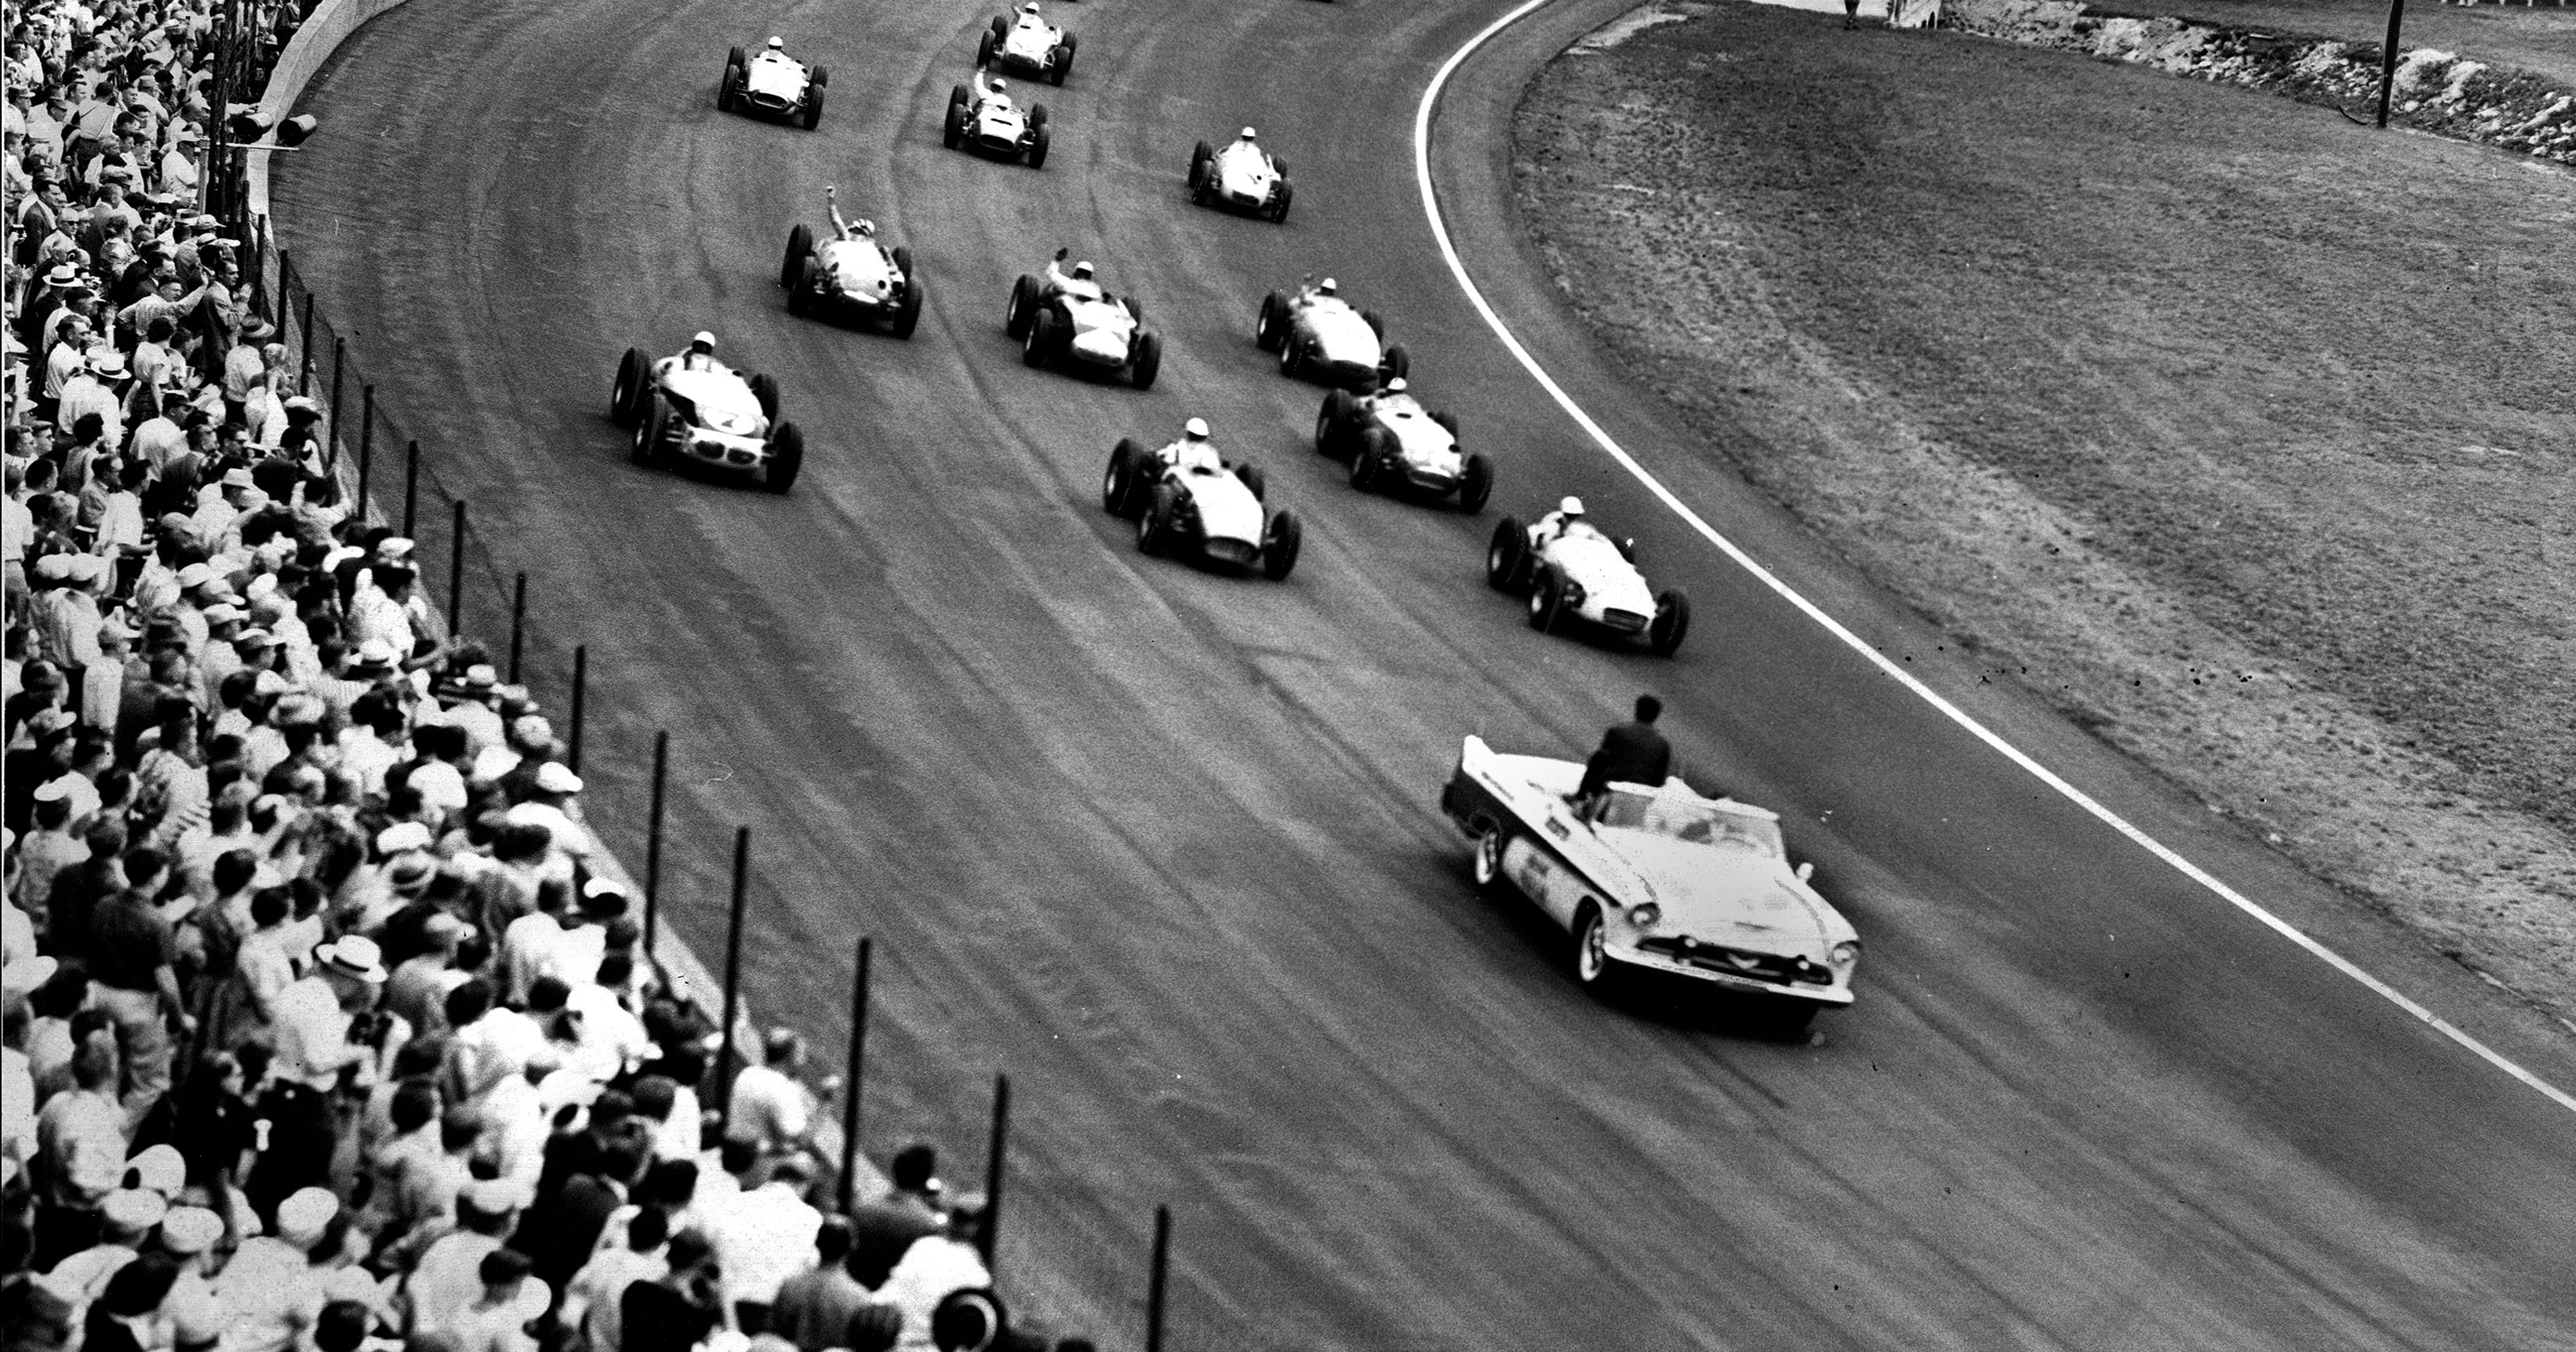 Flaherty Wins Soggy USAC Inaugural Indy 500 In 1956